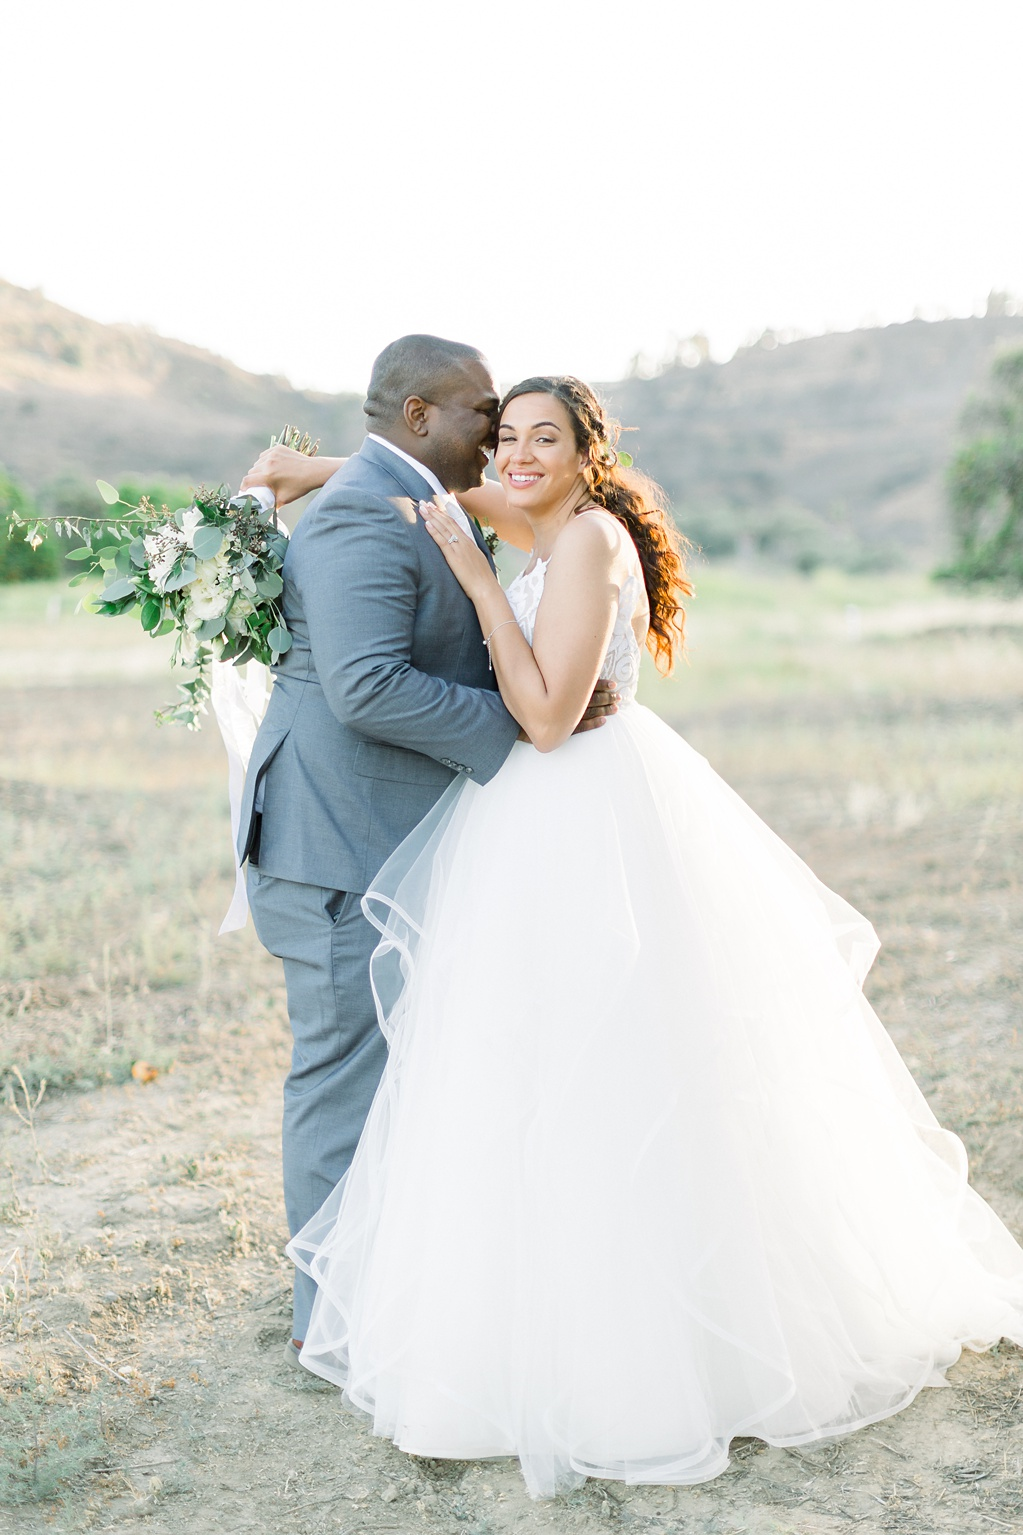 An Organic Floral Inspired Summer Wedding in the open fields of Hamilton Oaks, San Juan Capistrano by Wedding Photographer Madison Ellis (55)